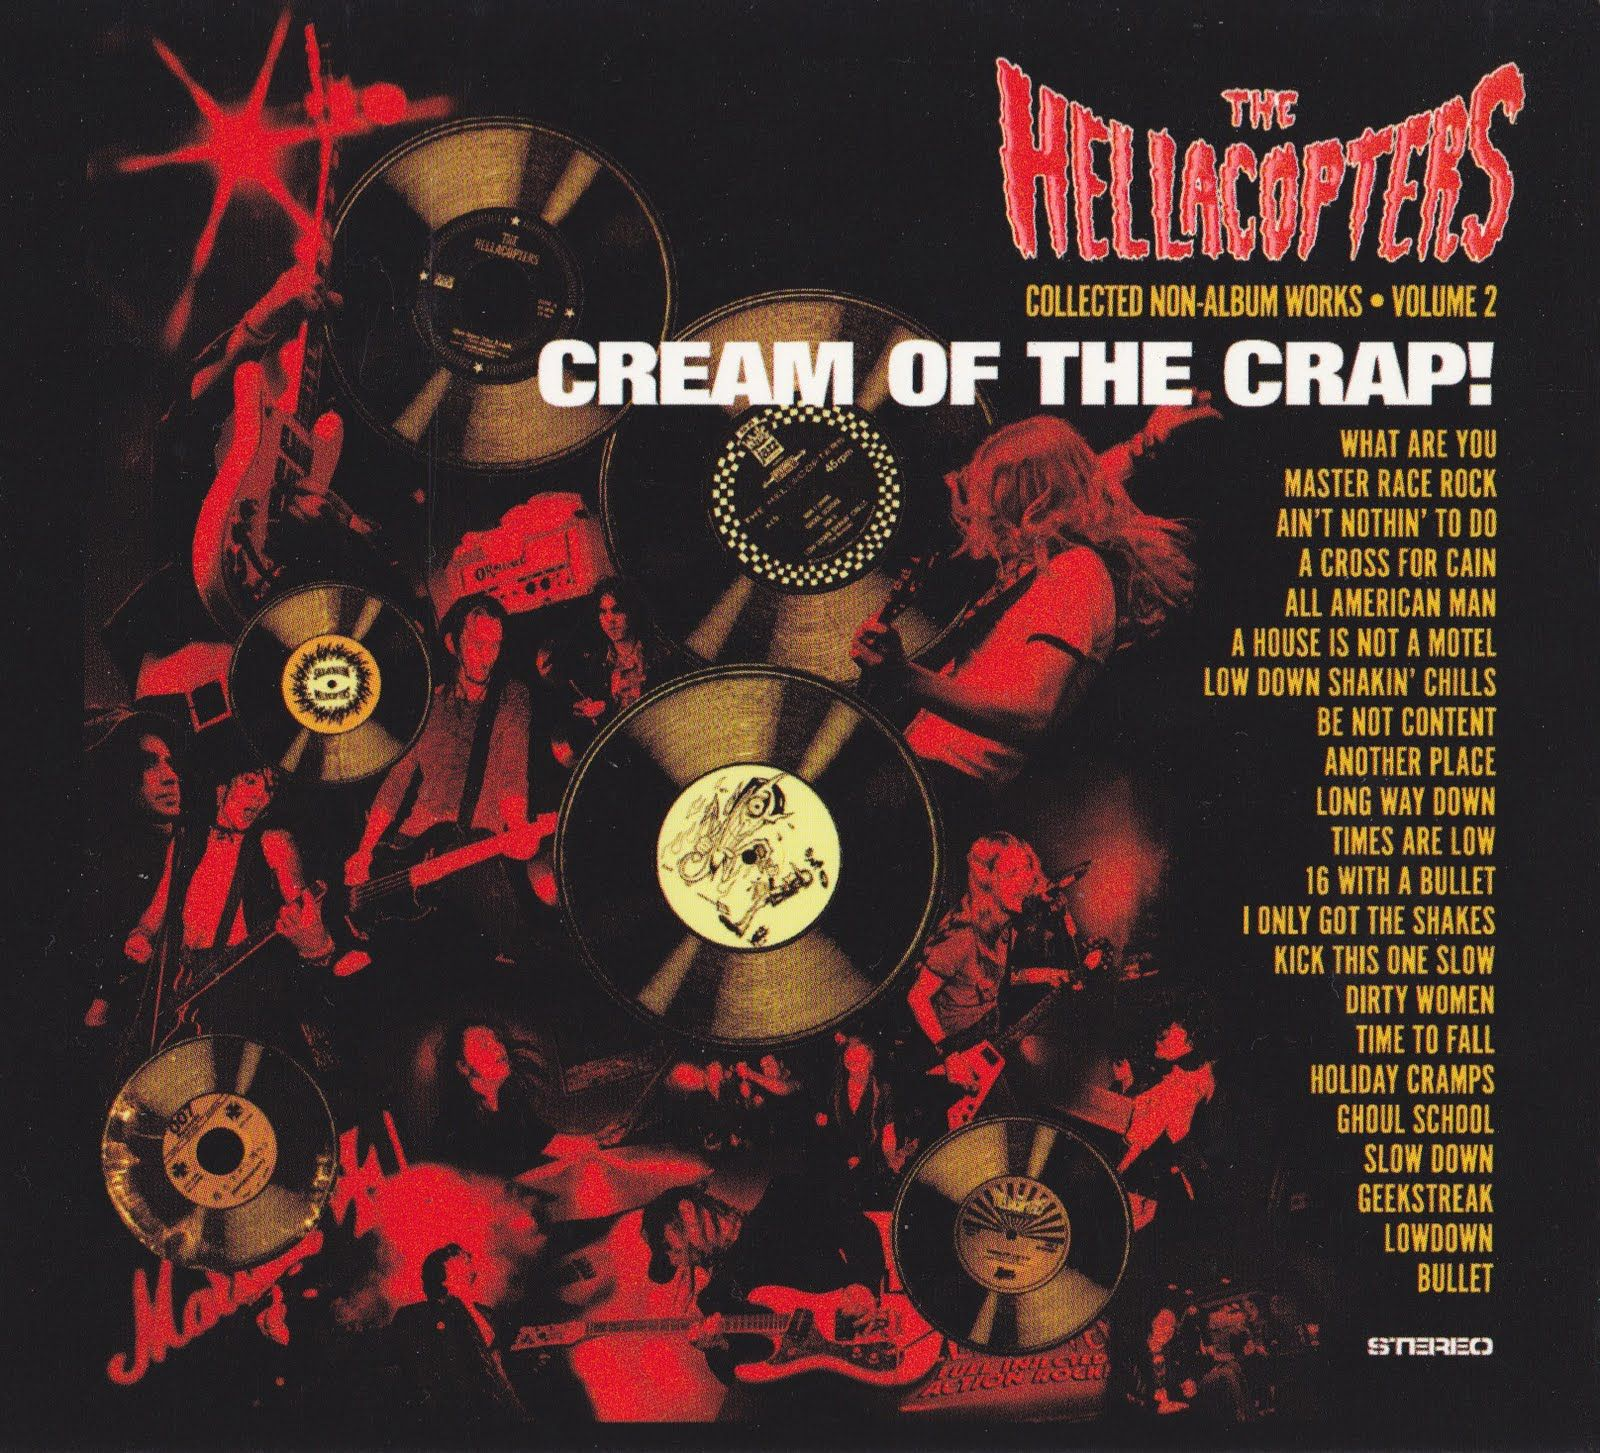 The Hellacopters - Cream Of The Crap Ii album cover